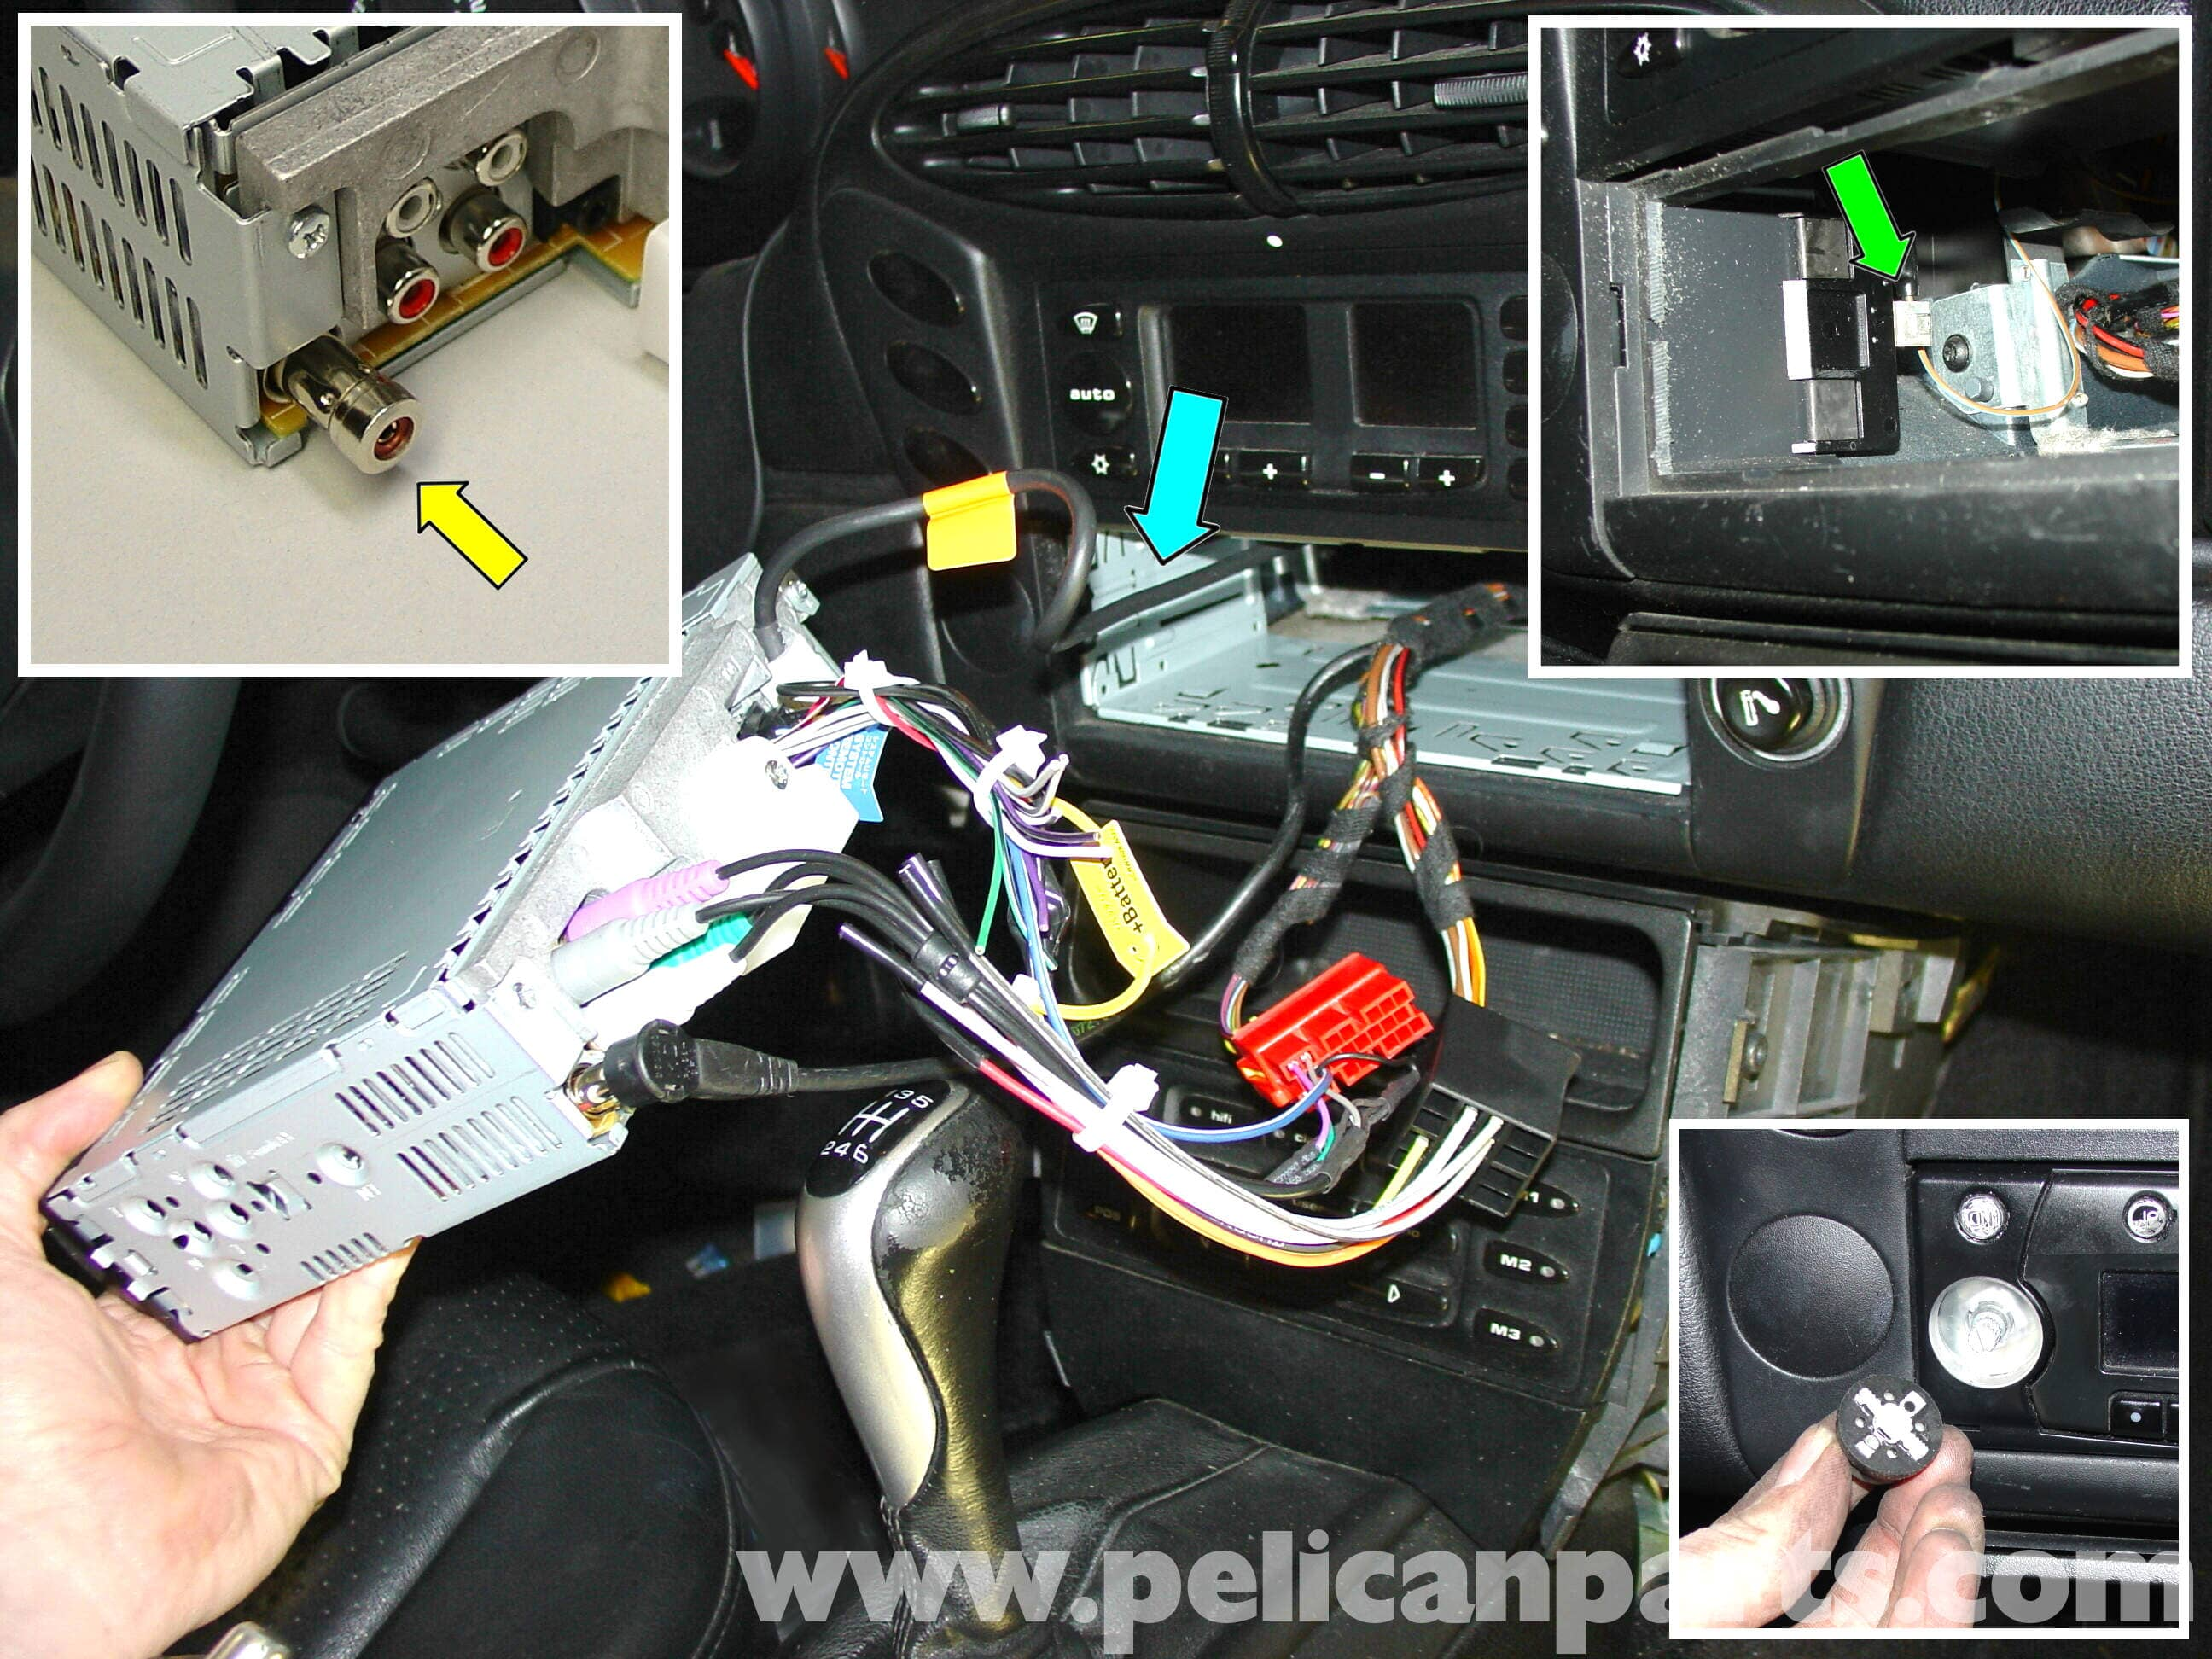 porsche 911 carrera radio head unit installation - 996 (1998-2005) - 997  (2005-2012) - pelican parts technical article  pelican parts